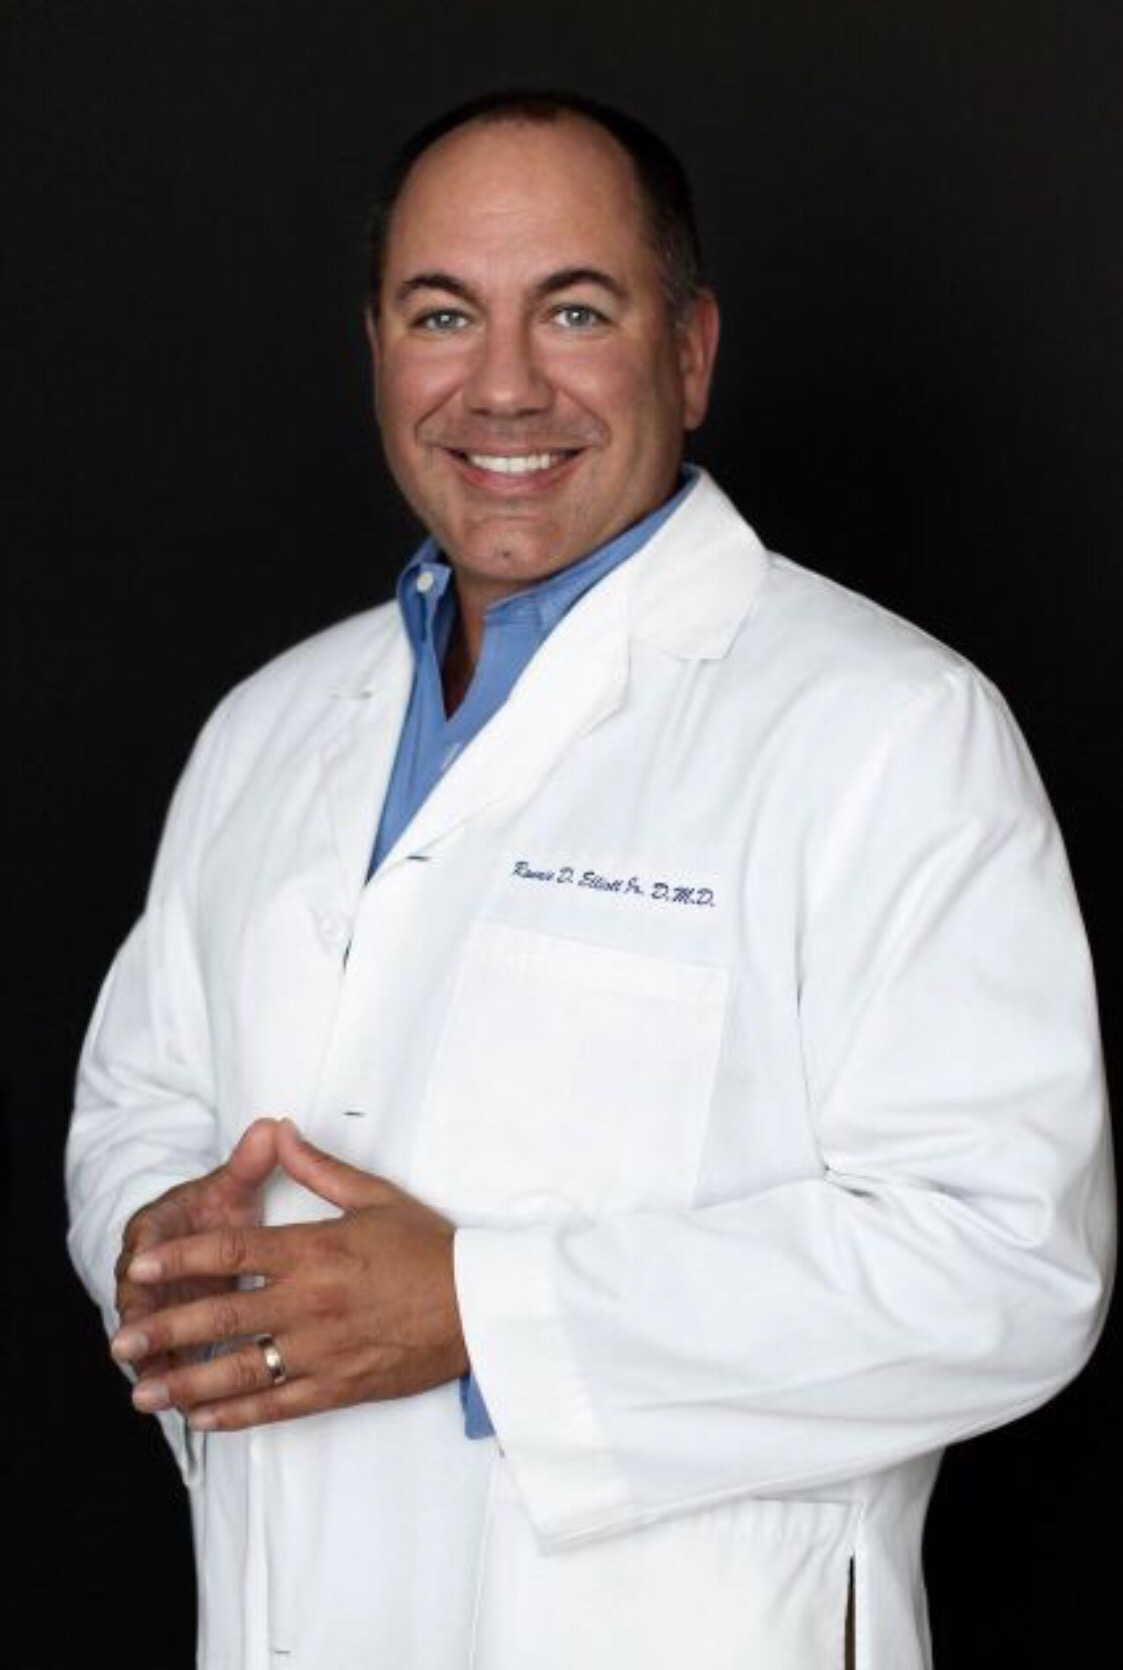 Dentist  Dentistry  Dr. Ron Elliott  Invisalign  Dental Sleep Therapy  Botox  Dermal Fillers  TMJ